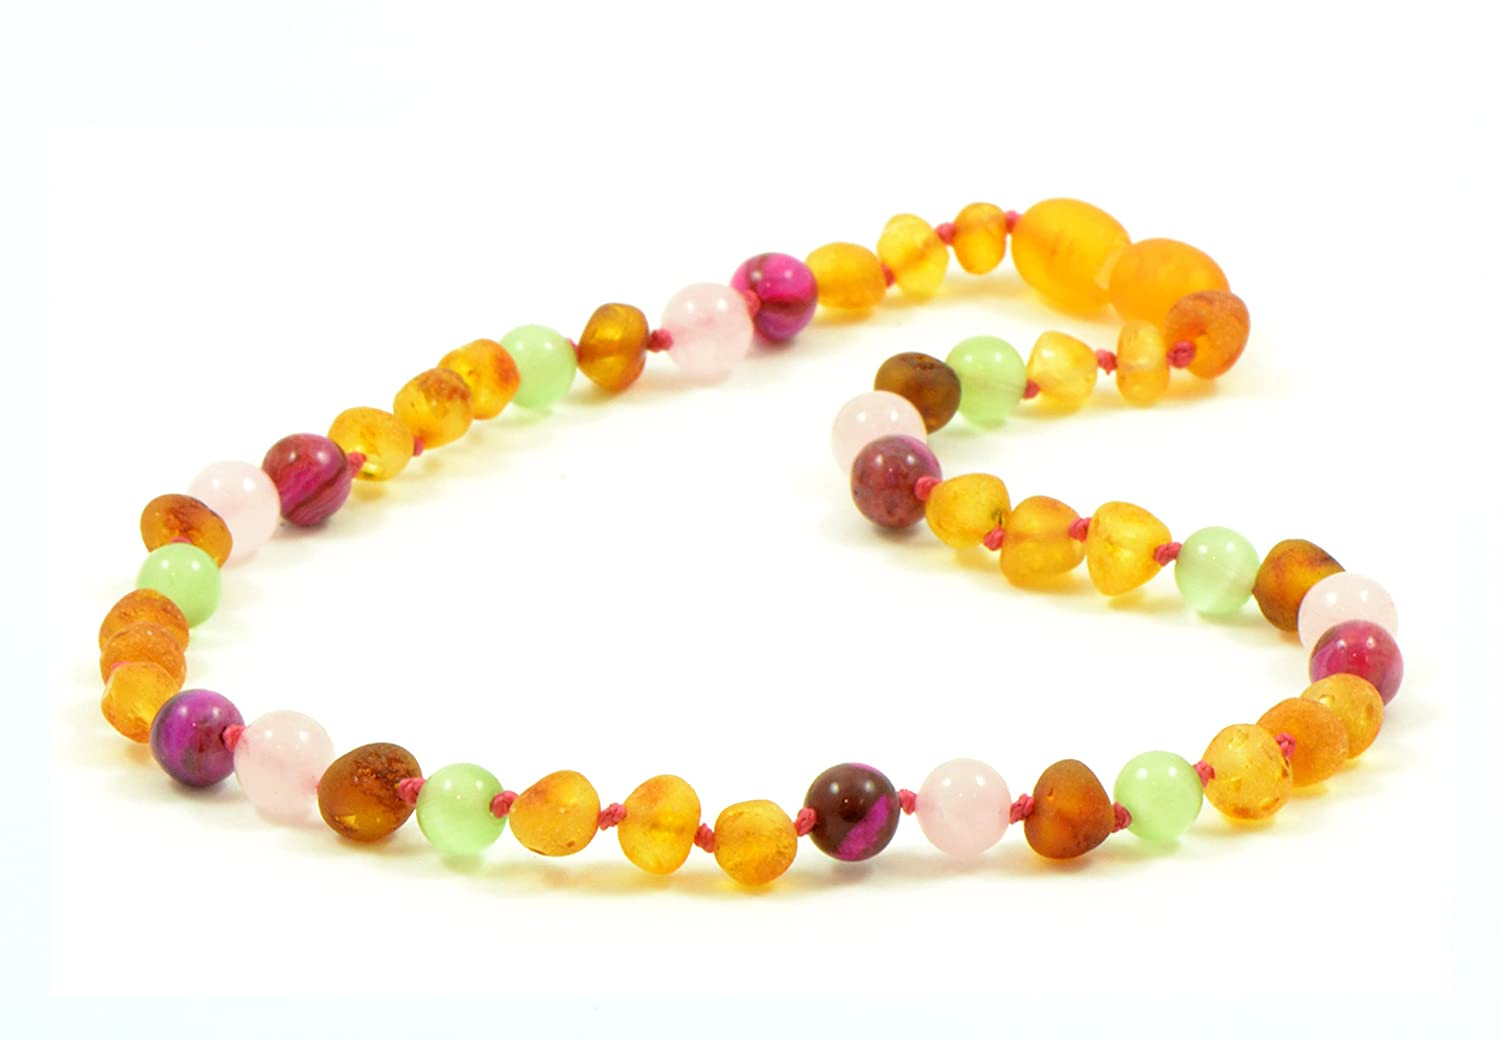 Amber Teething Necklace for Baby Raw Honey Amber//Rose Agate//Quartz//Cat Eye Beads 13.4 inch 12.6-14.1 inches Amber Jewelry Unisex Hand-Made from Certified Baltic Amber Beads